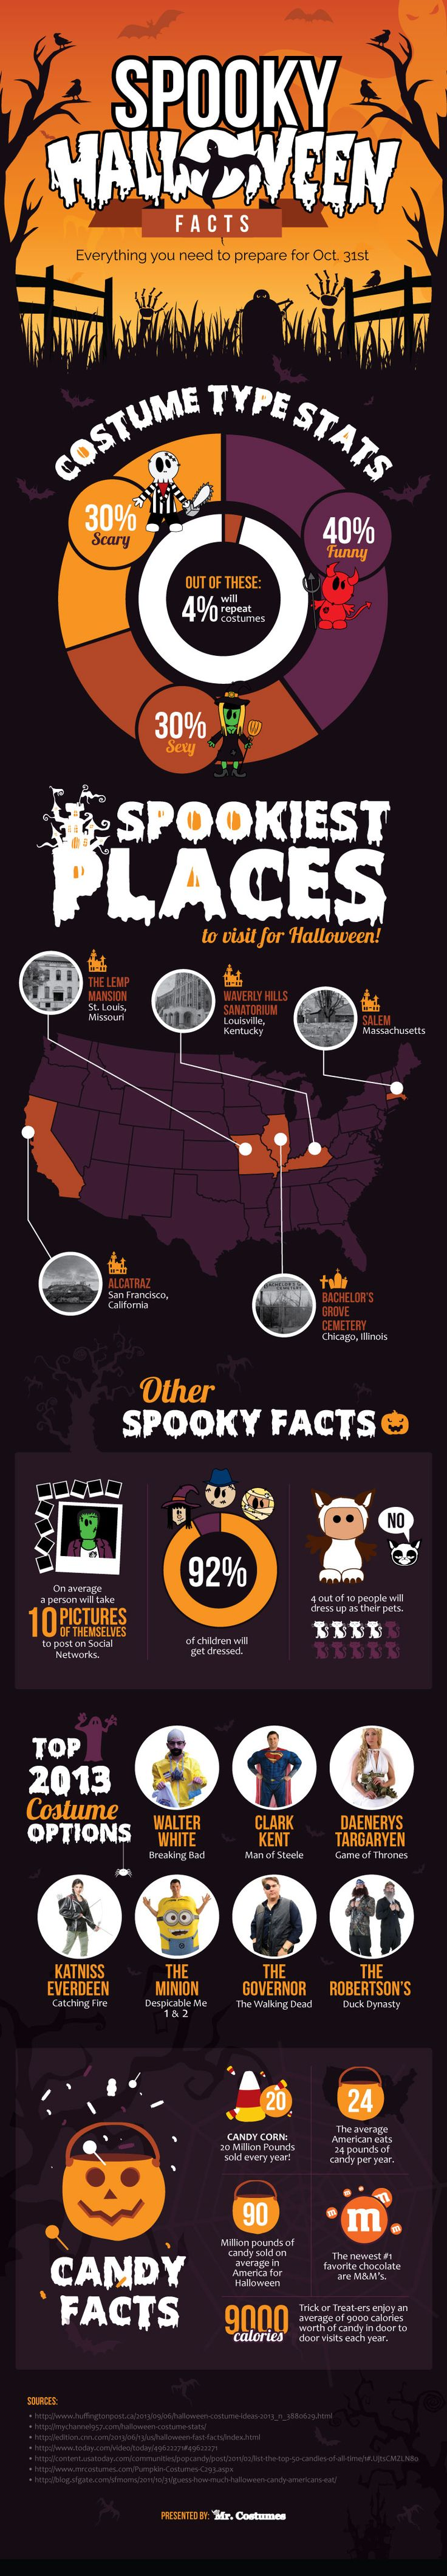 Fun and Spooky Halloween Facts - Mr. Costumes Blog